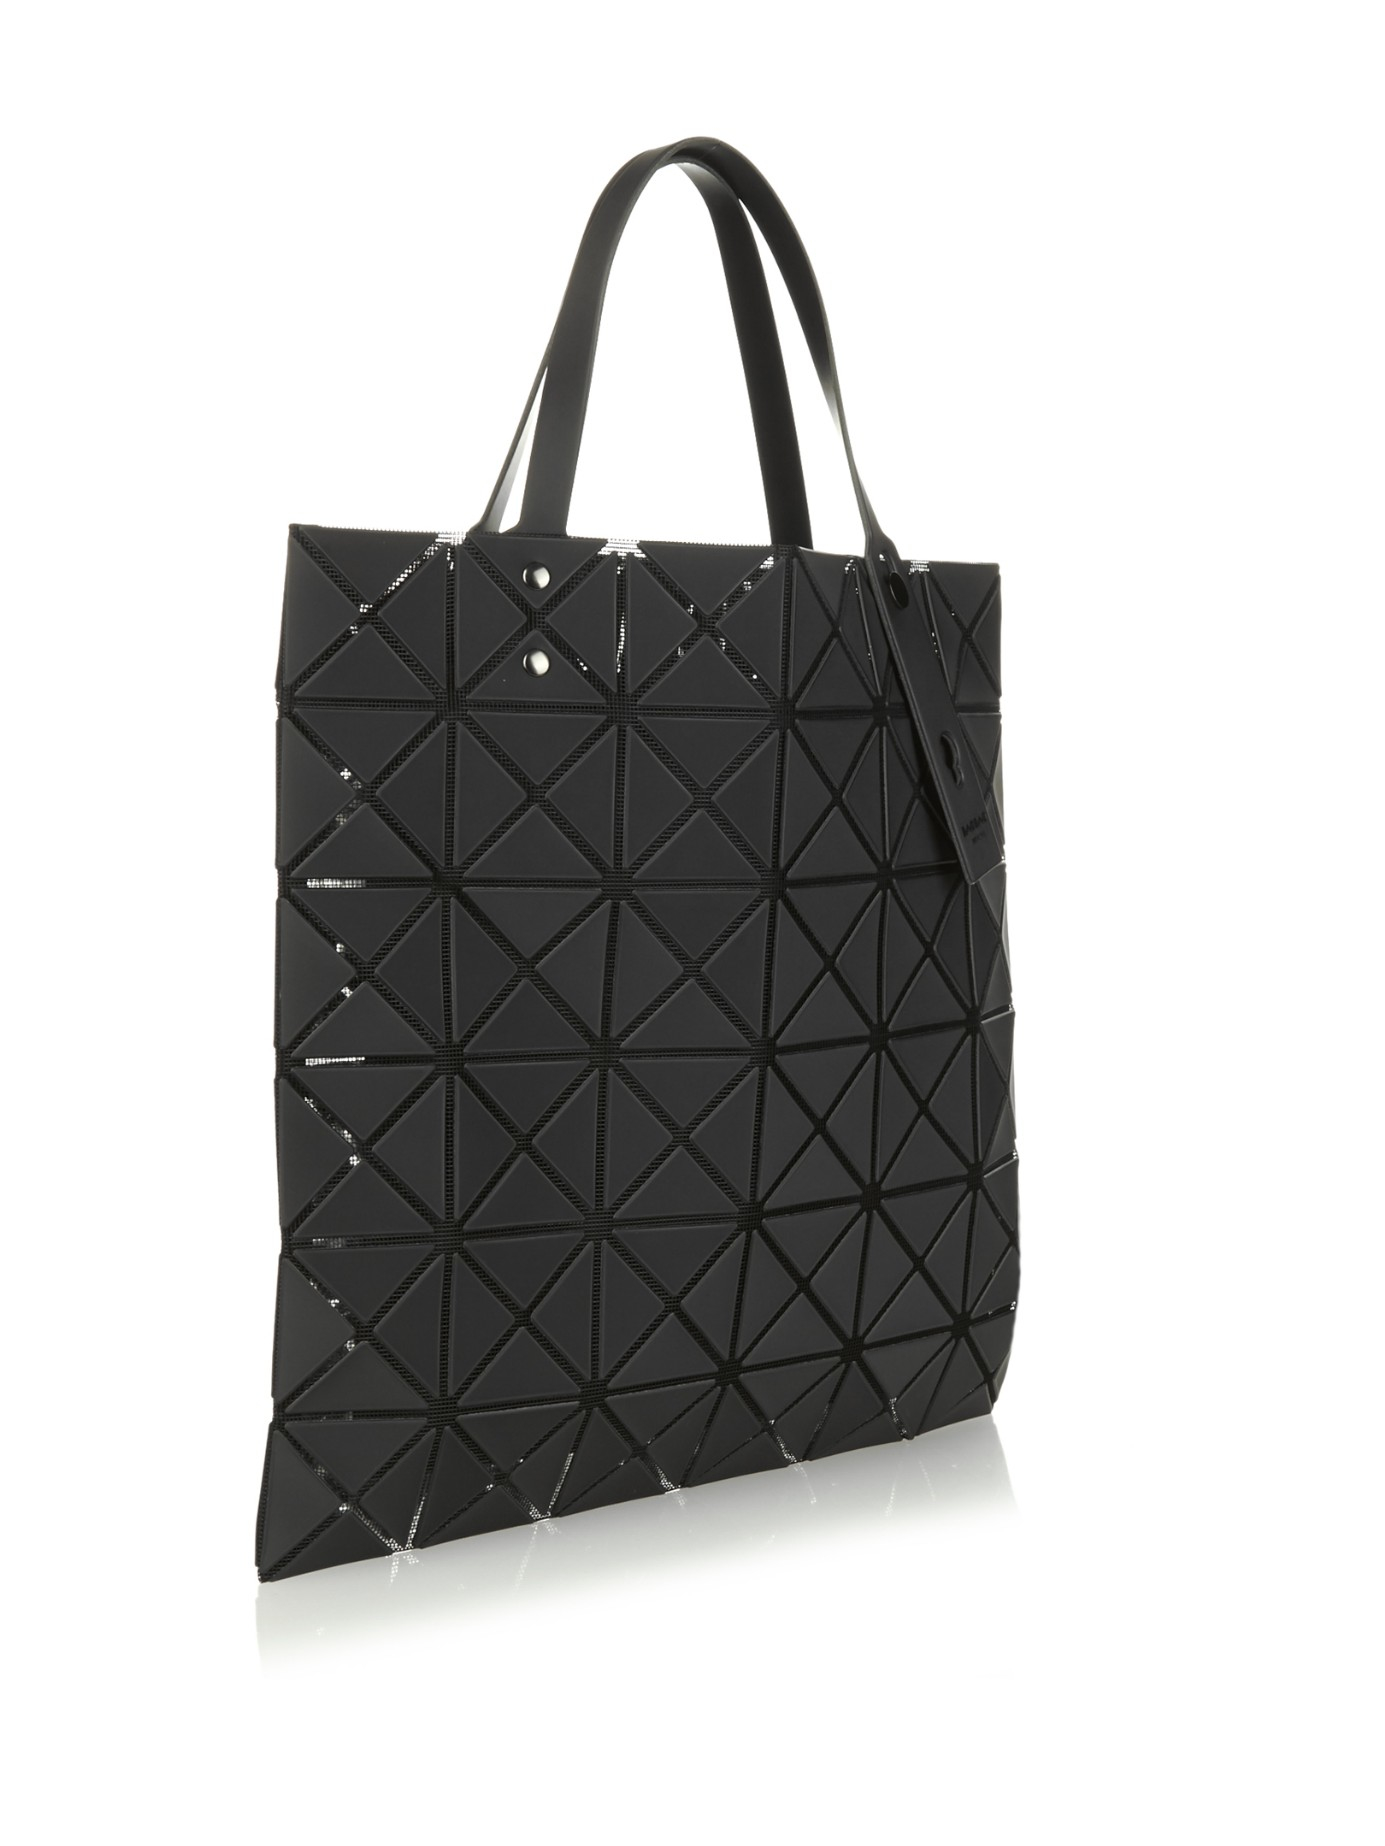 68570f85a620 Lyst - Bao Bao Issey Miyake Lucent Basic Tote in Black